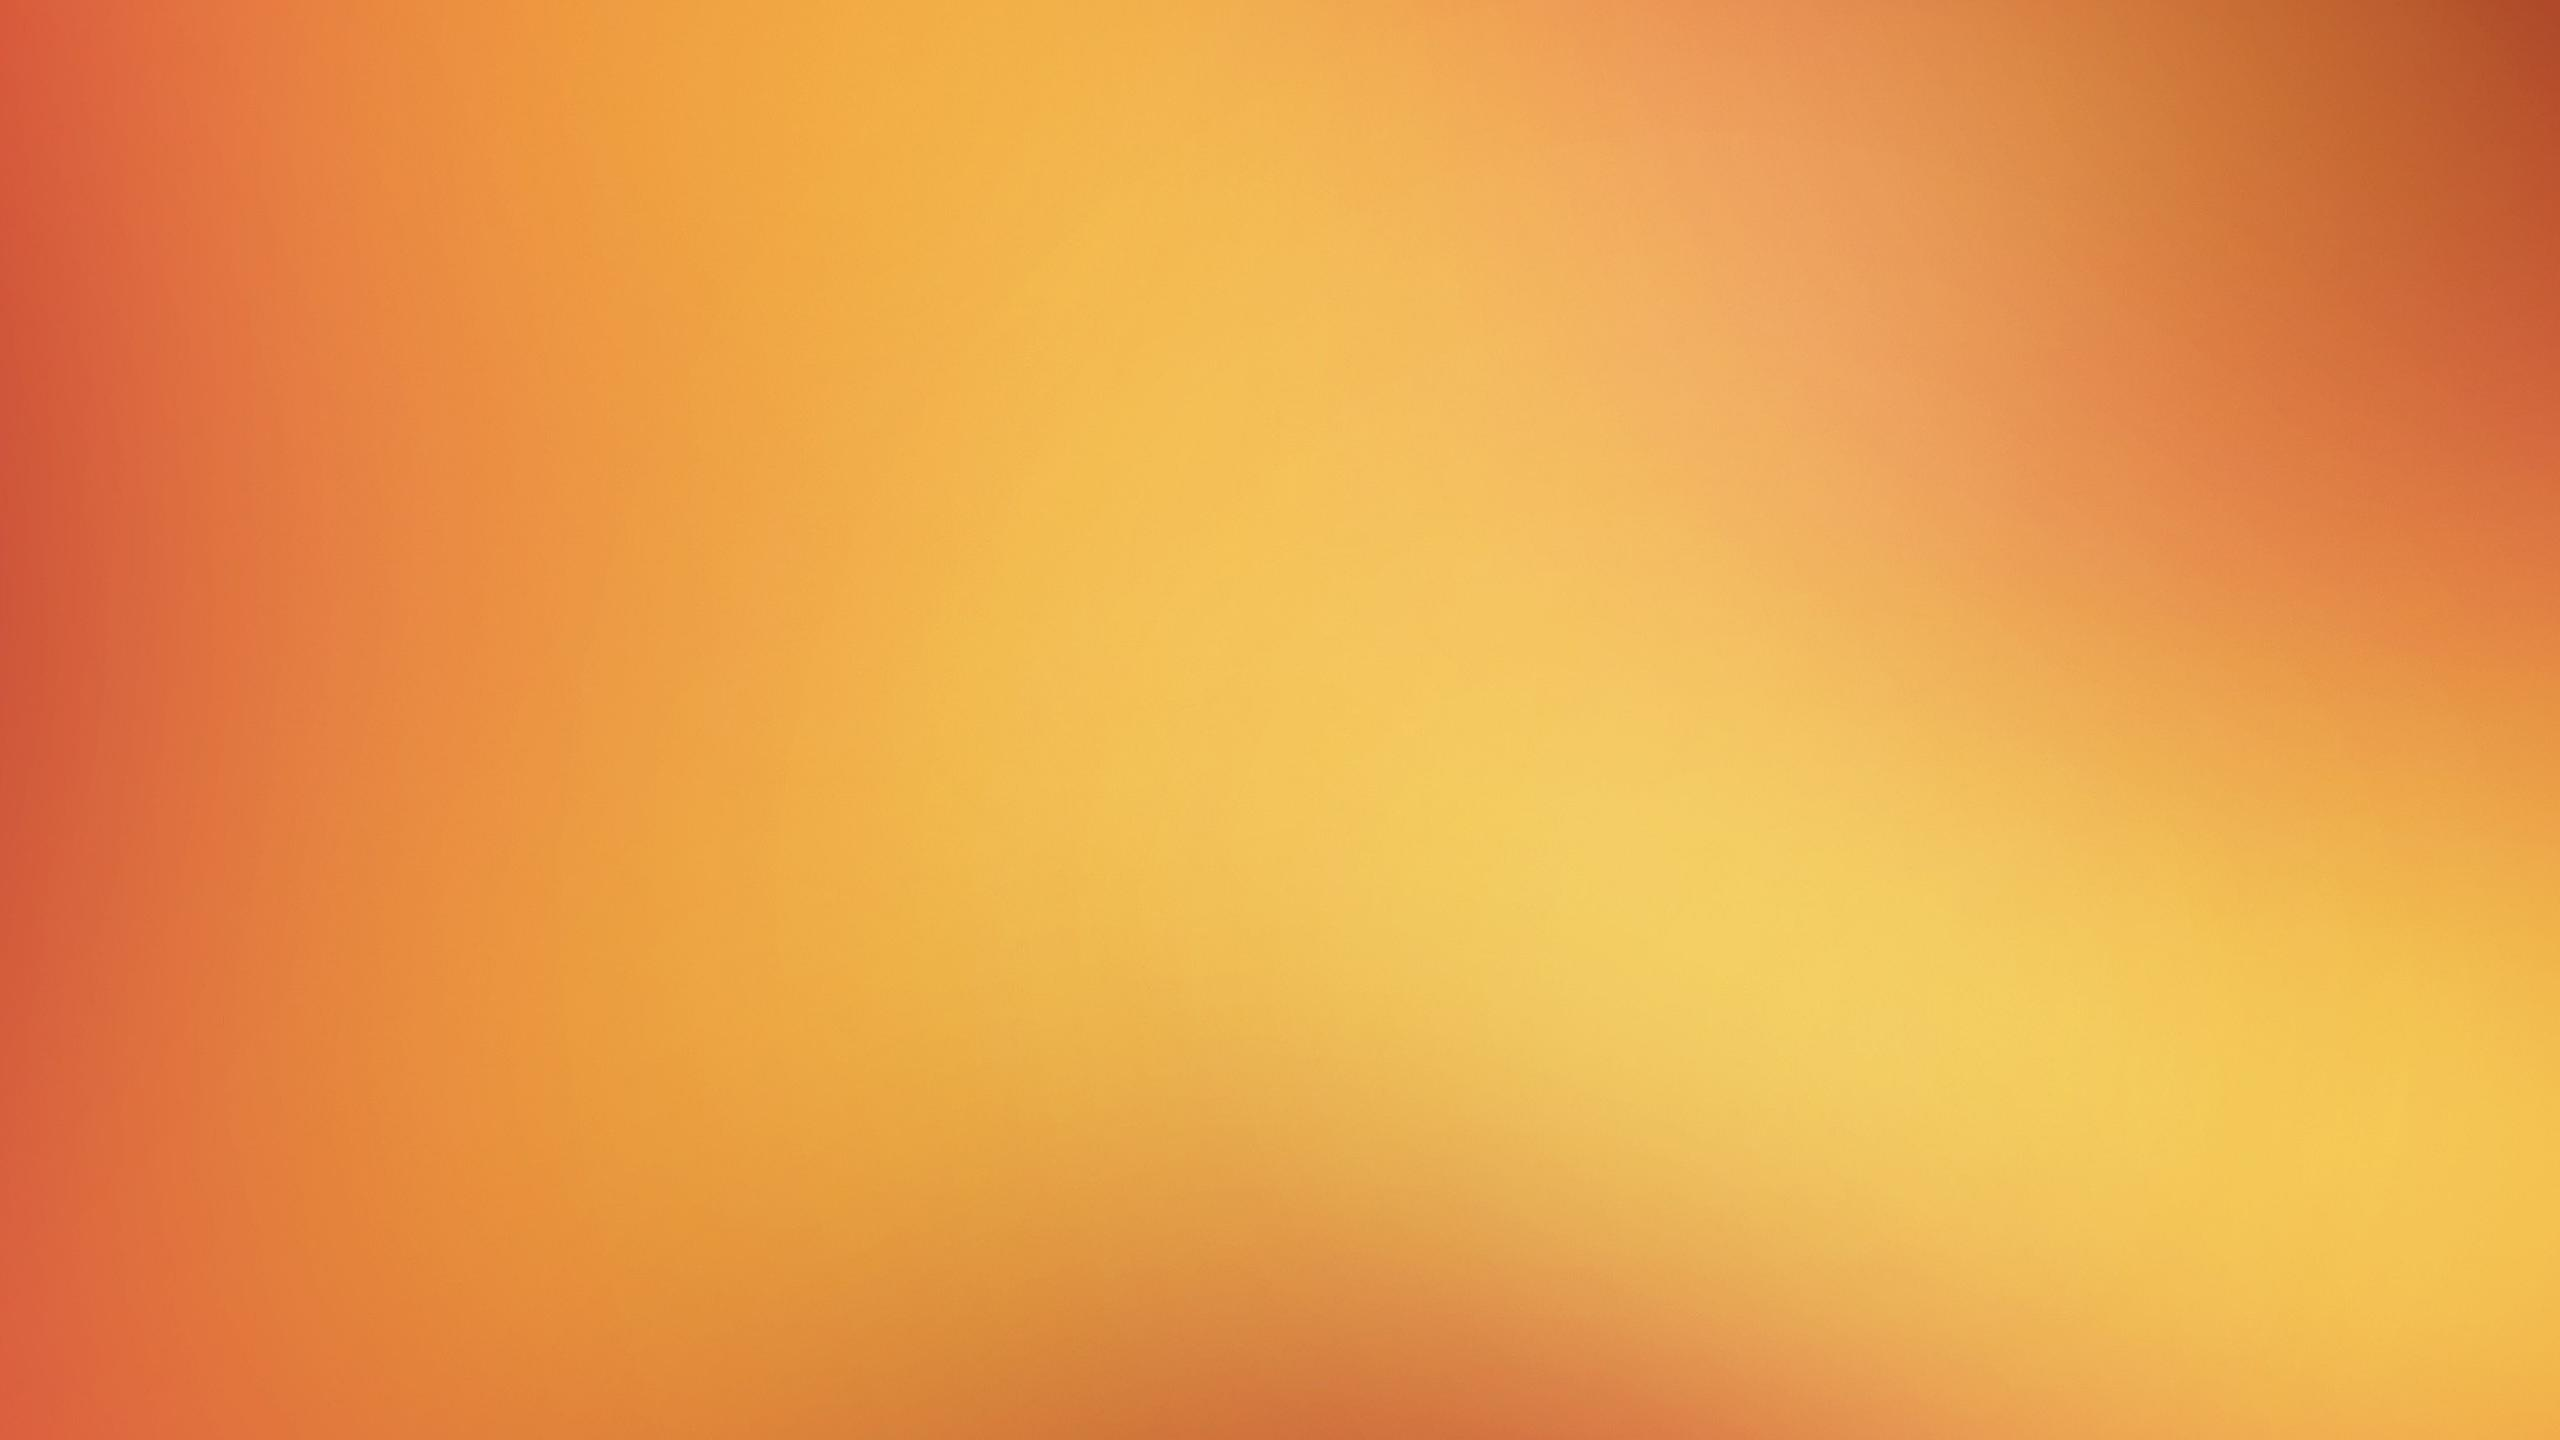 Orange Light wallpaper | 2560x1440 | #74195